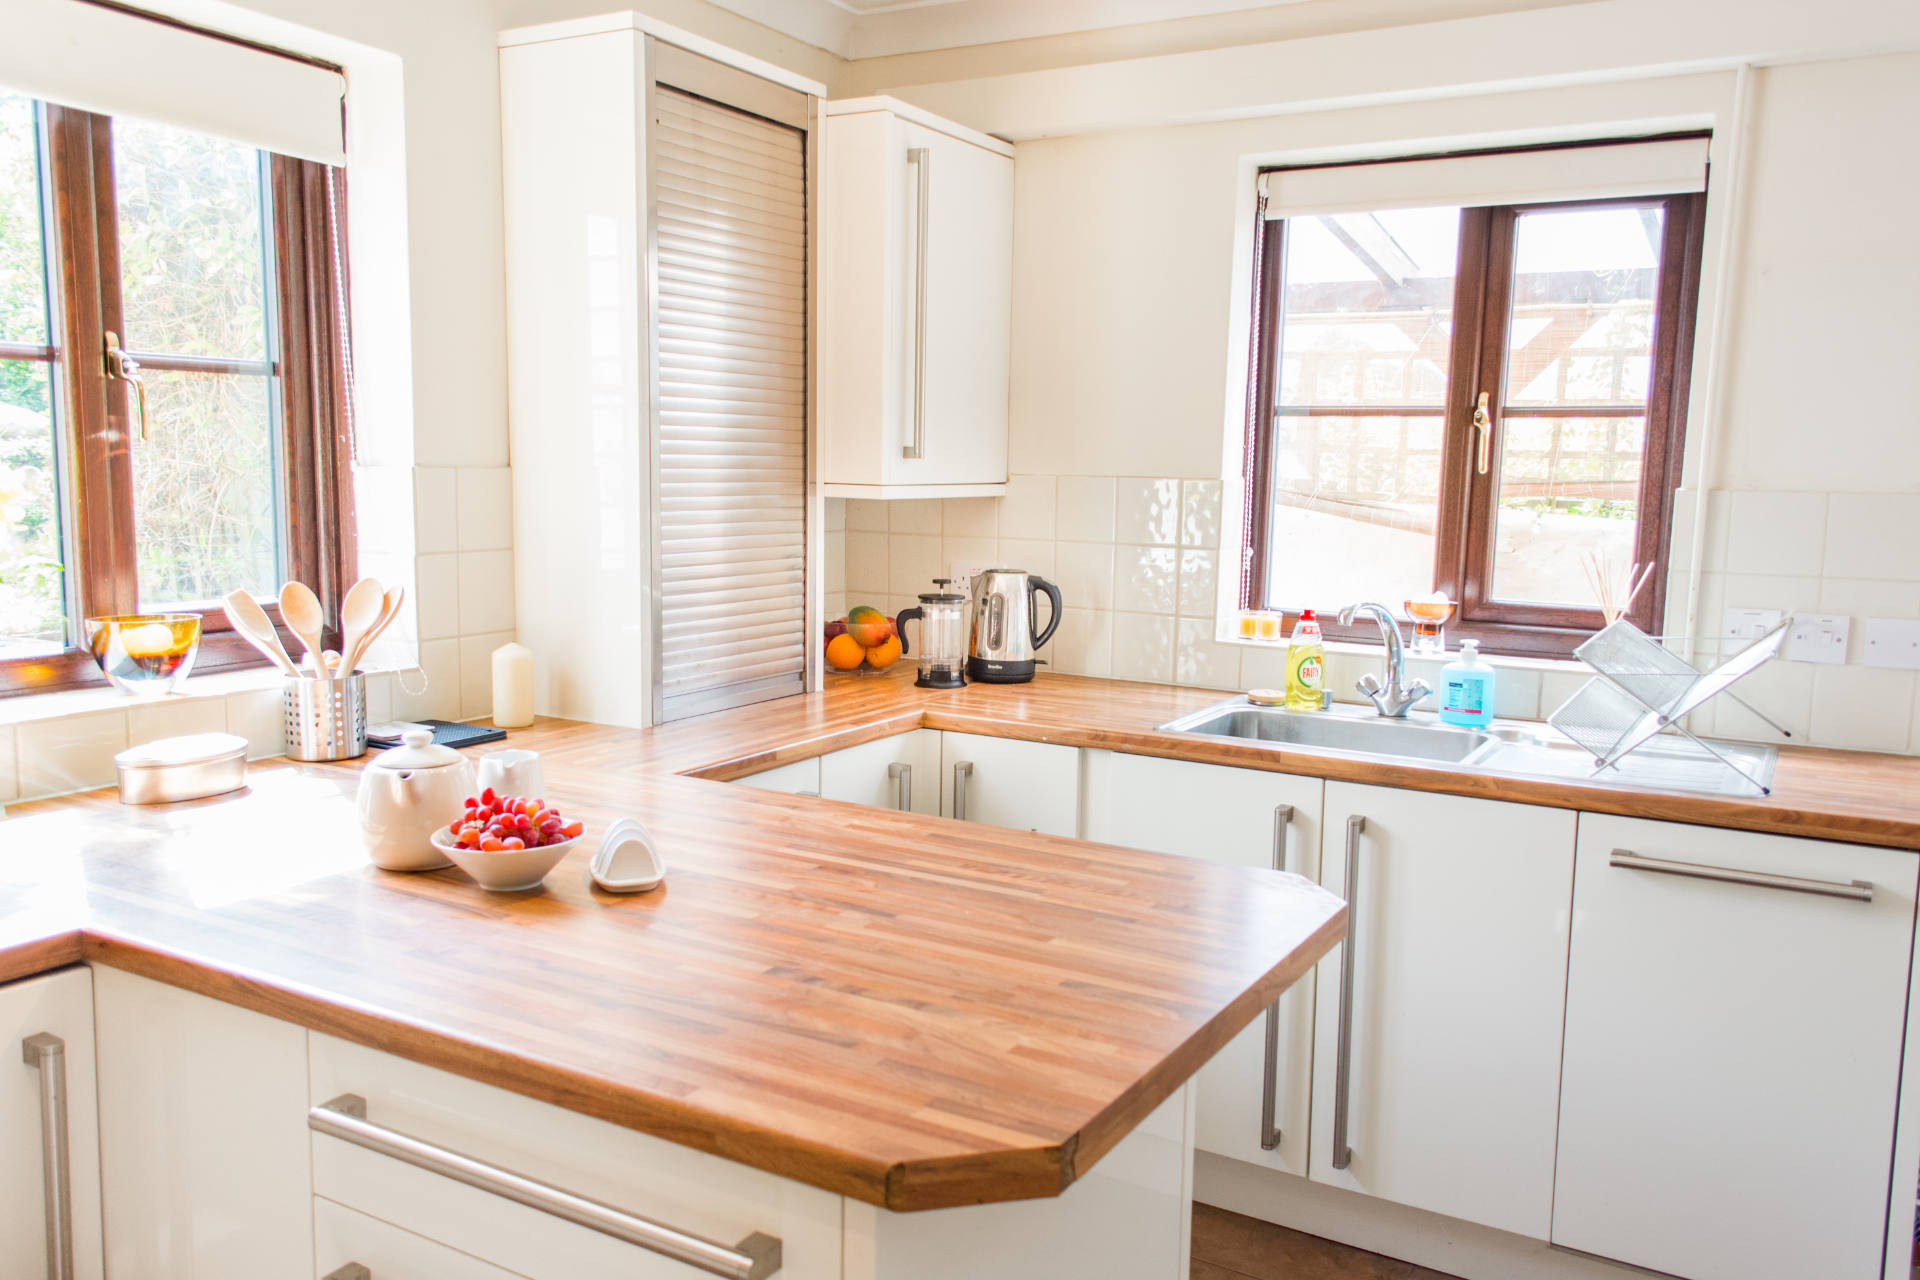 Breakfast bar and worktops with window showing out to the garden.